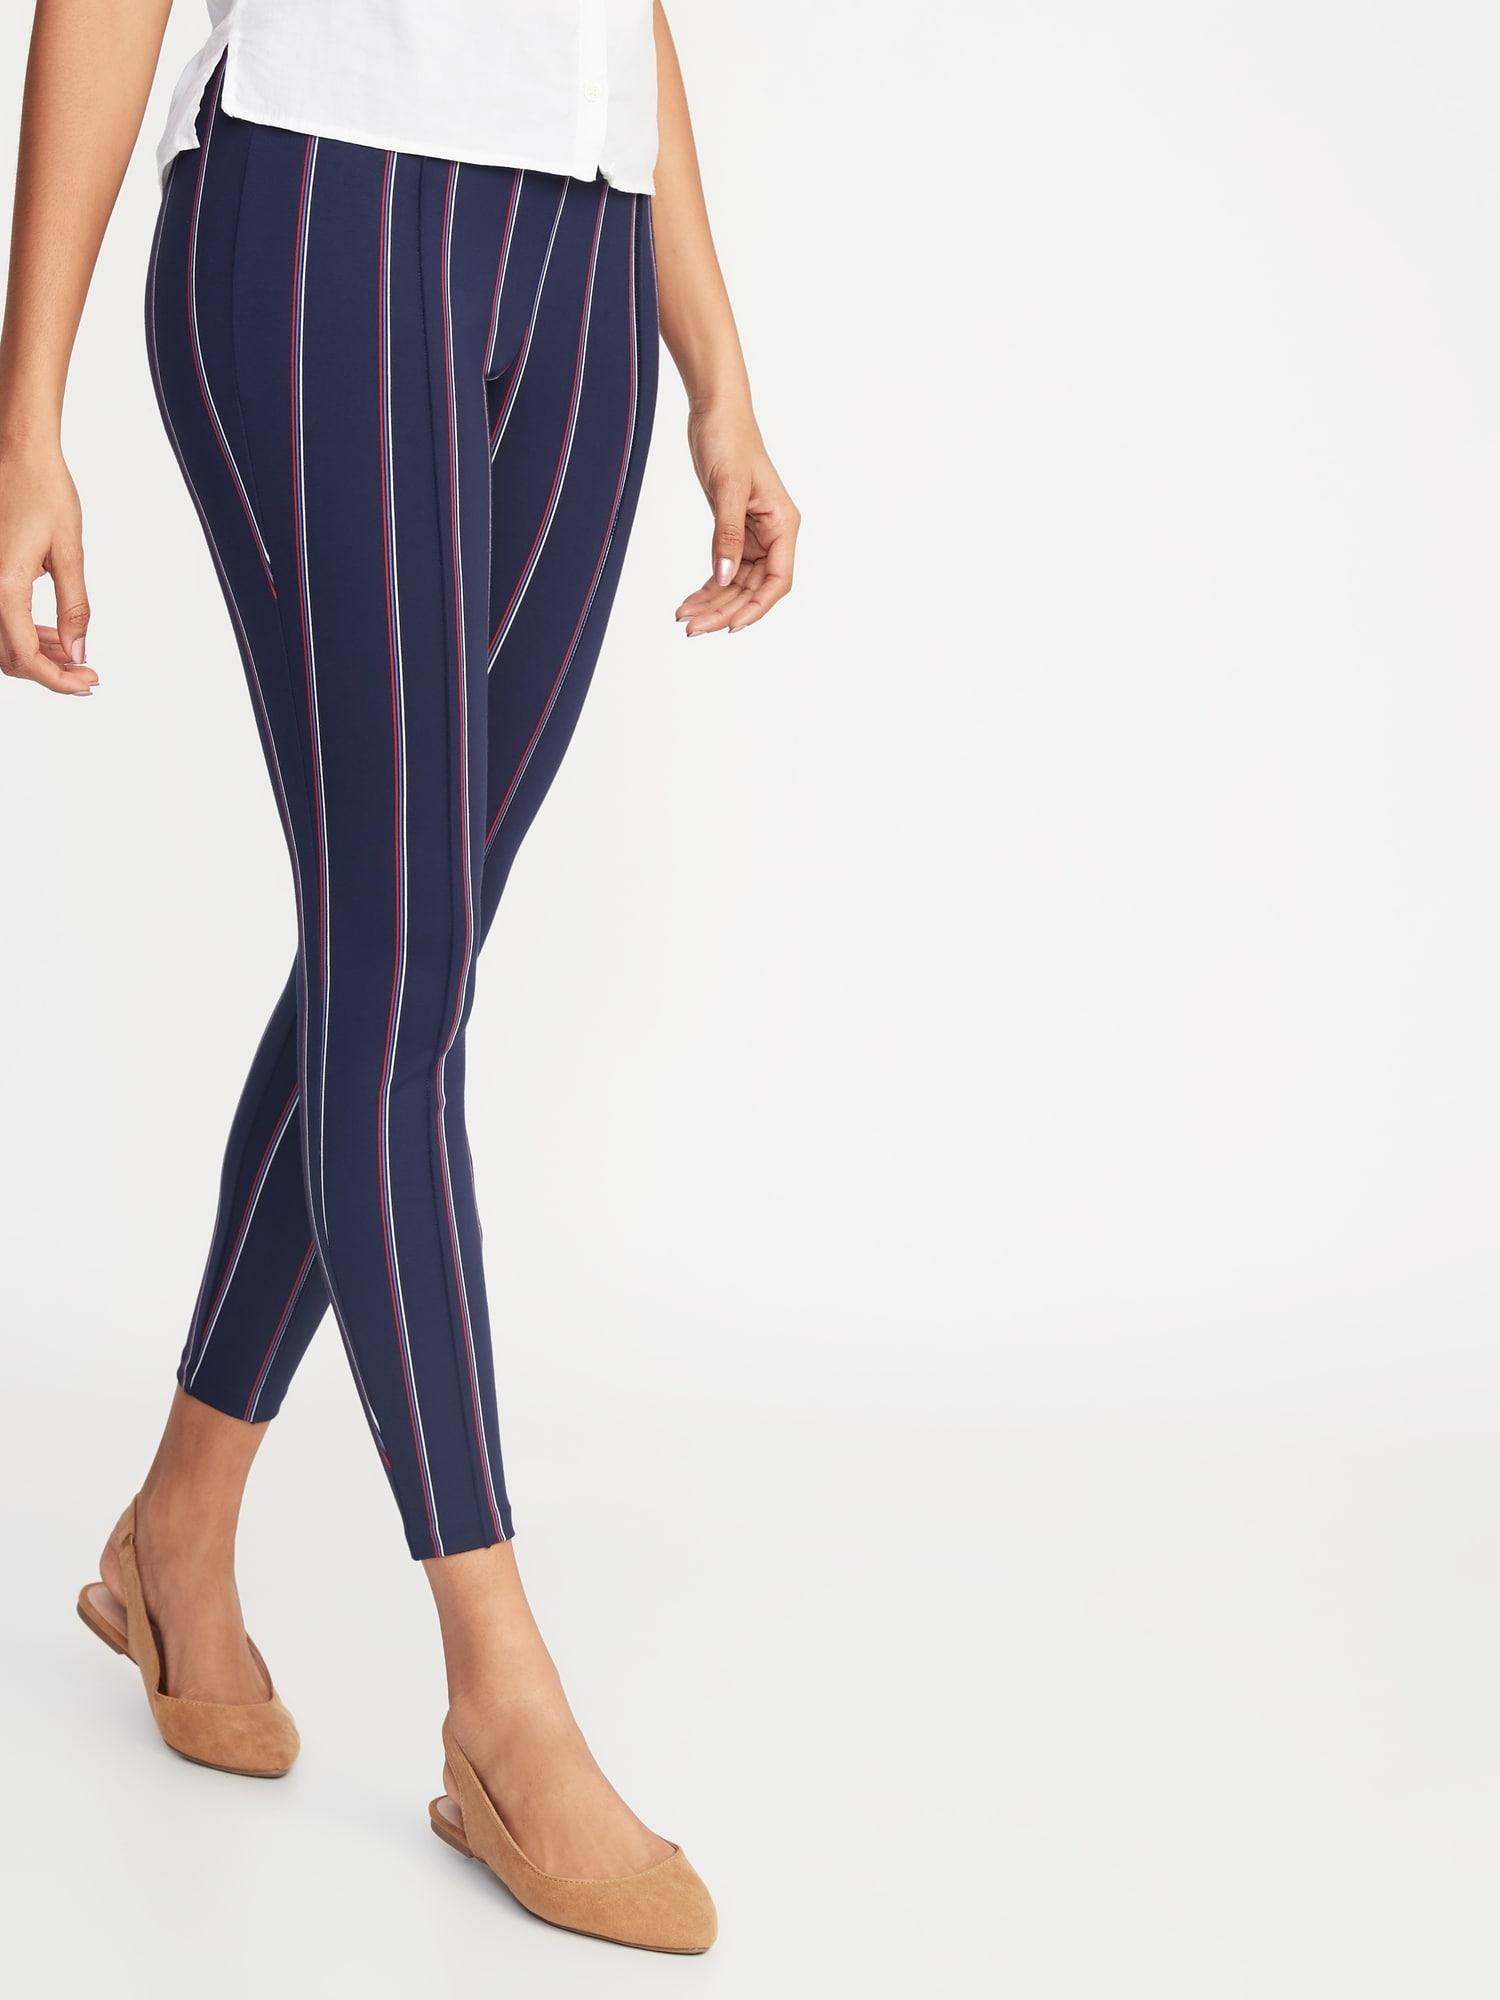 ac2ac1a12b467 Lyst - Old Navy High-rise Ponte-knit Stevie Pants in Blue